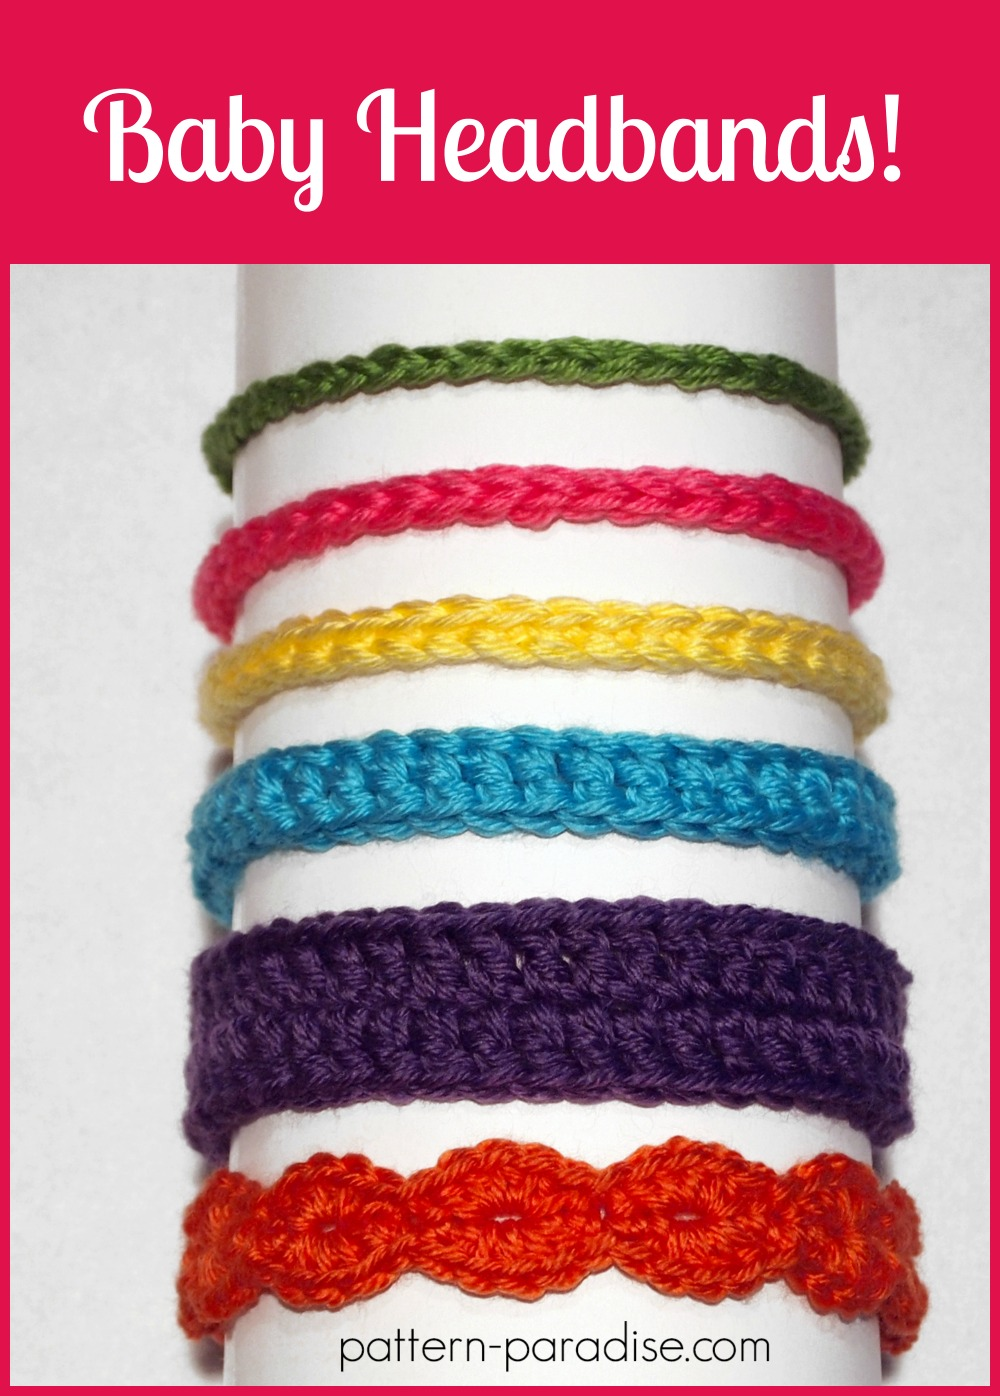 Free Crochet Pattern: Six Styles of Baby Headbands | Pattern Paradise